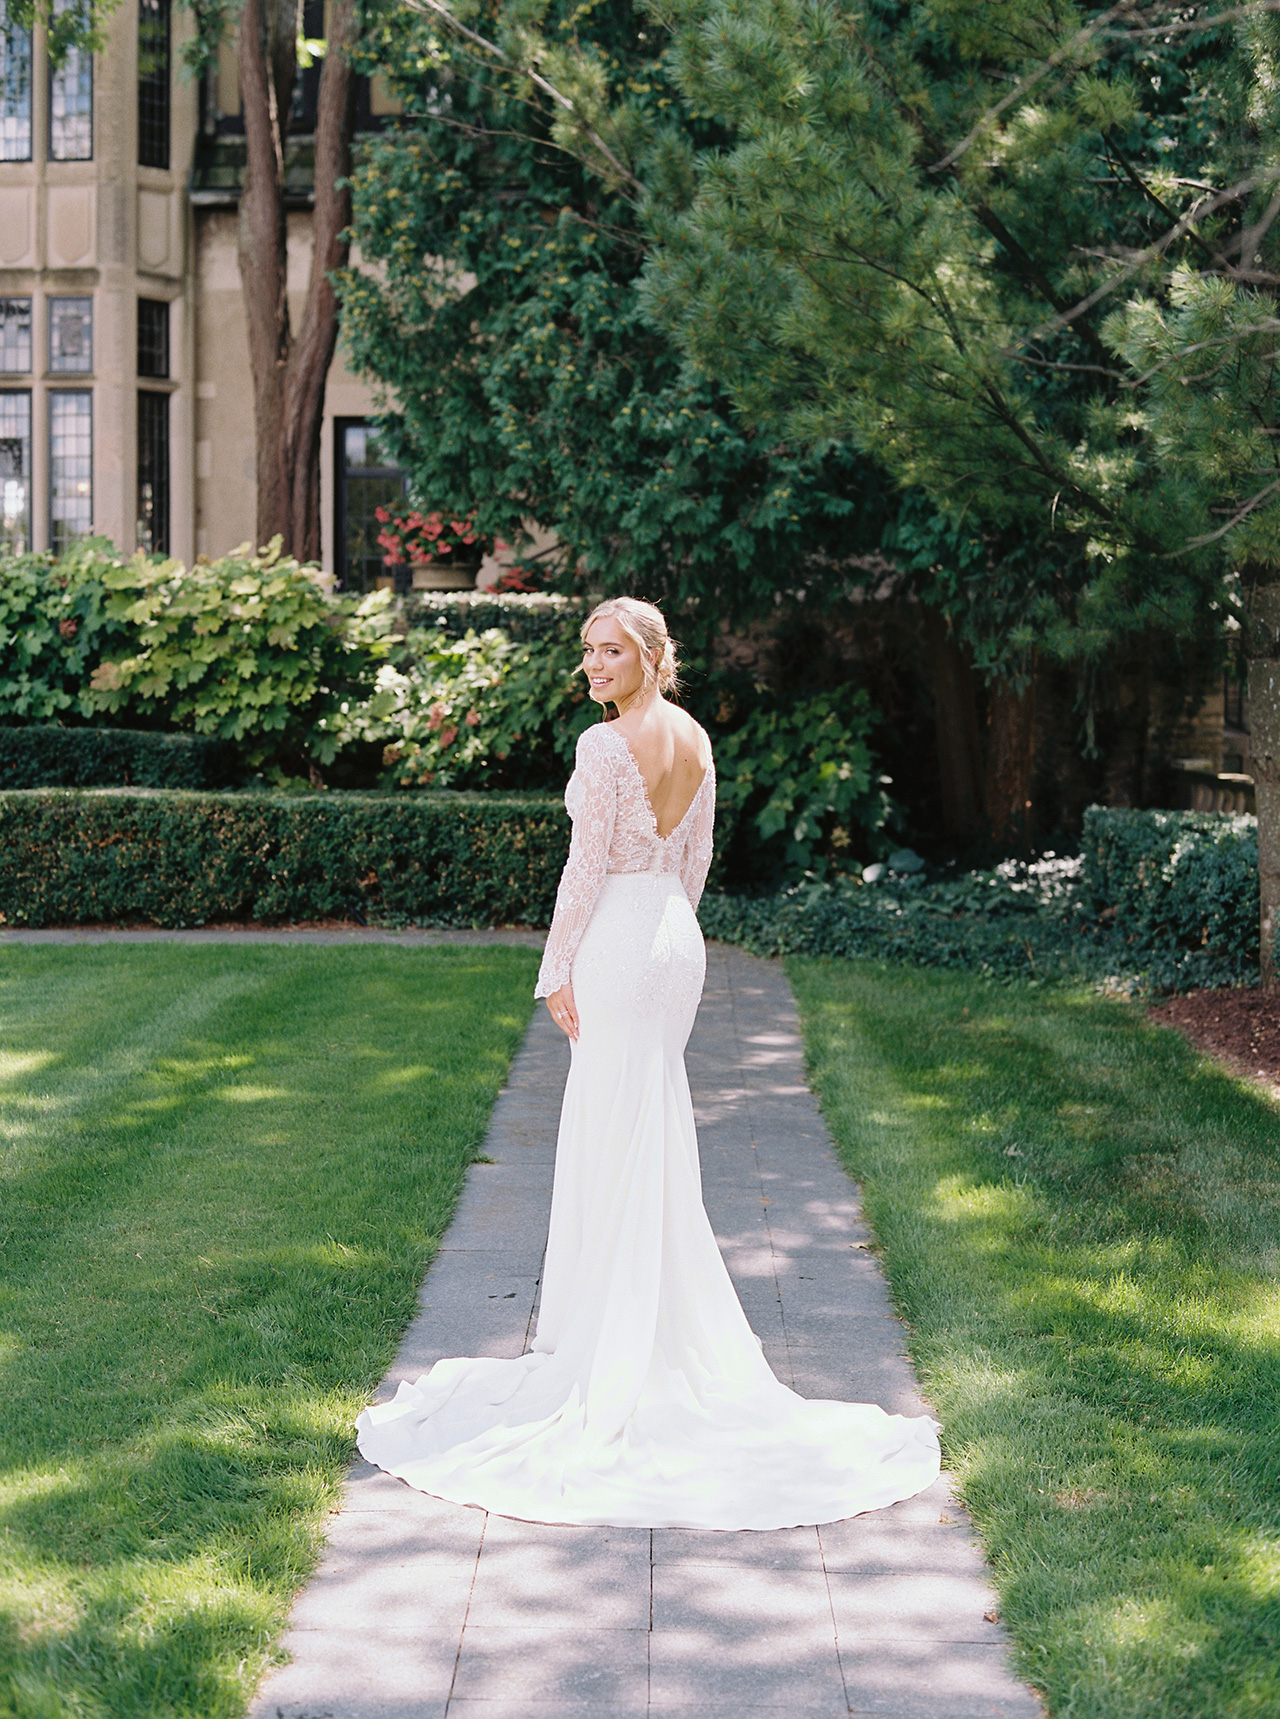 bride wedding dress long sleeve outdoor pose